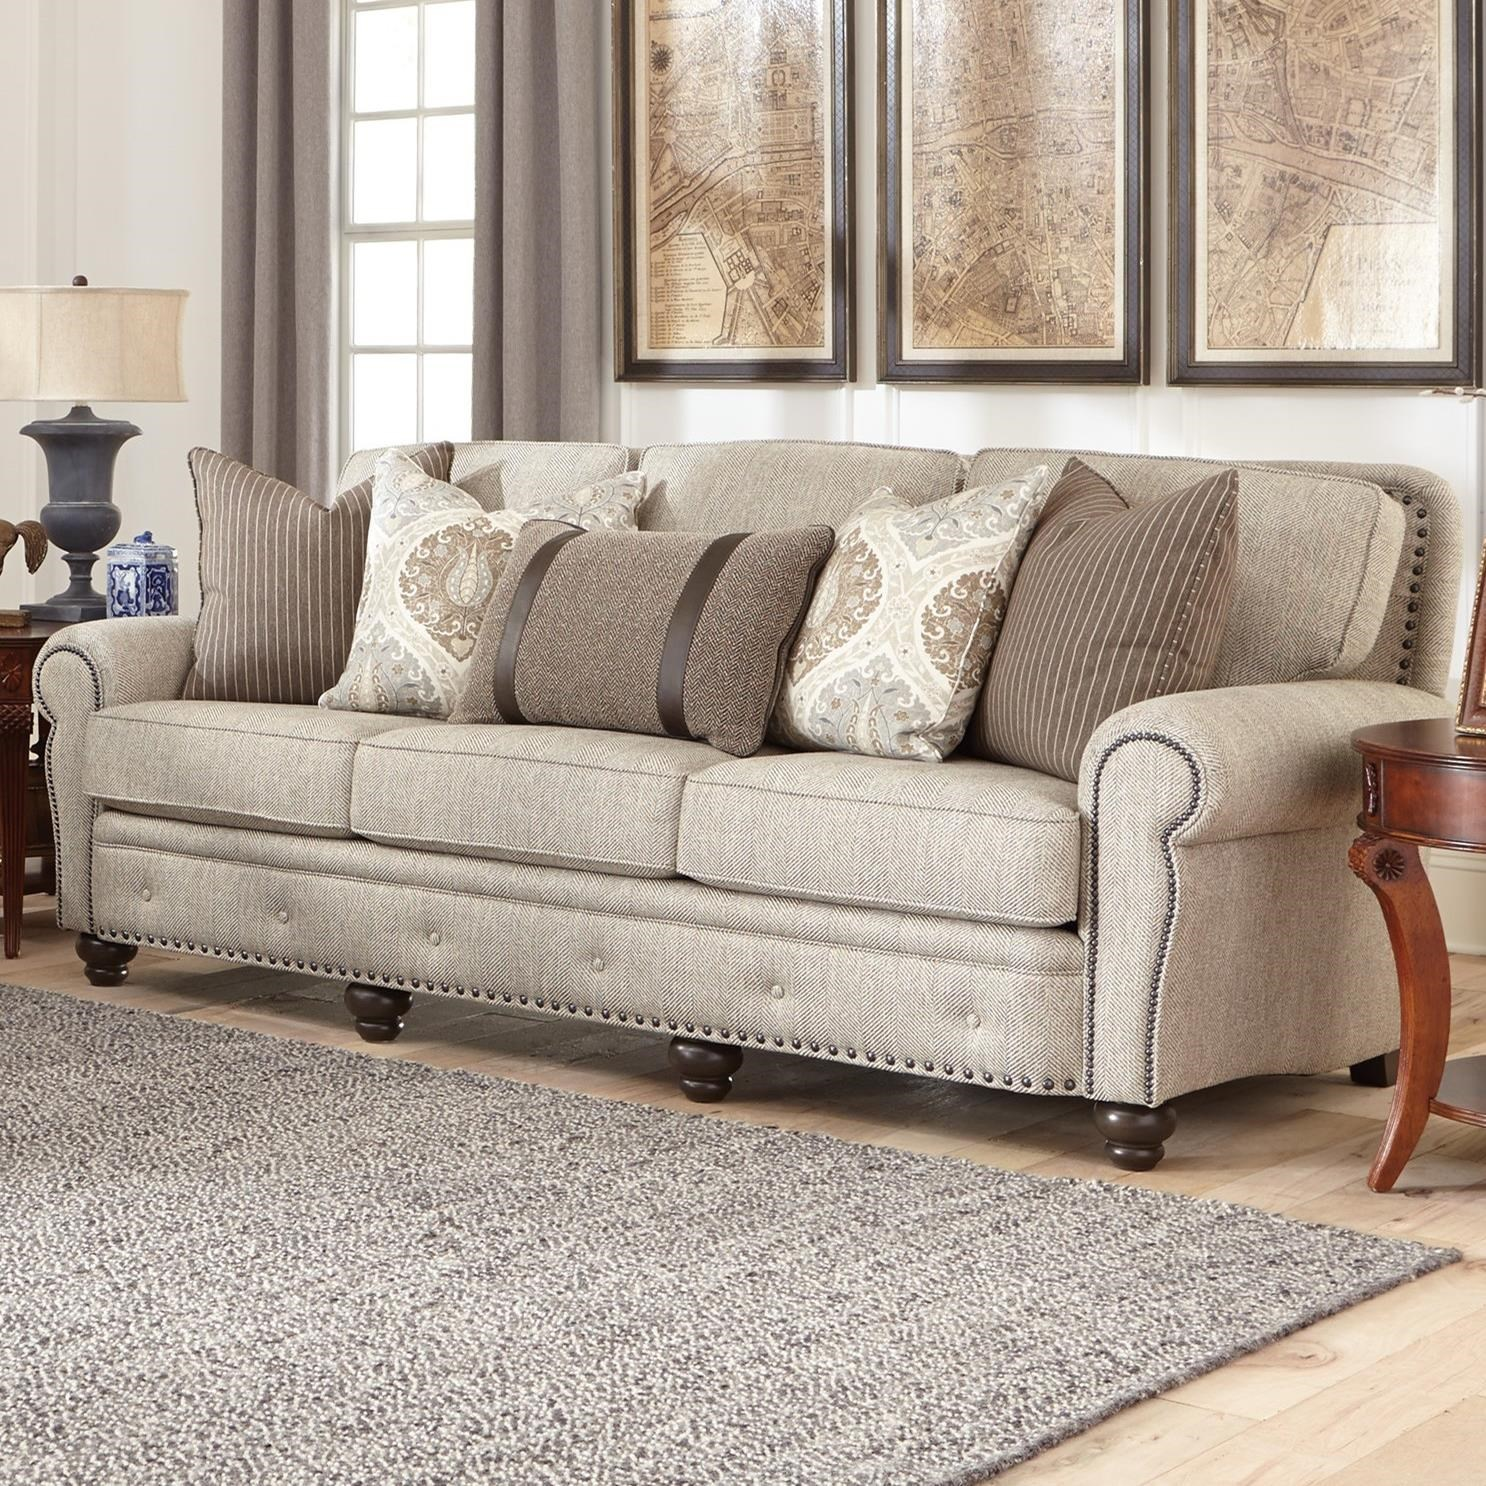 Smith Brothers 237 Large Sofa - Item Number: 237-13-385914